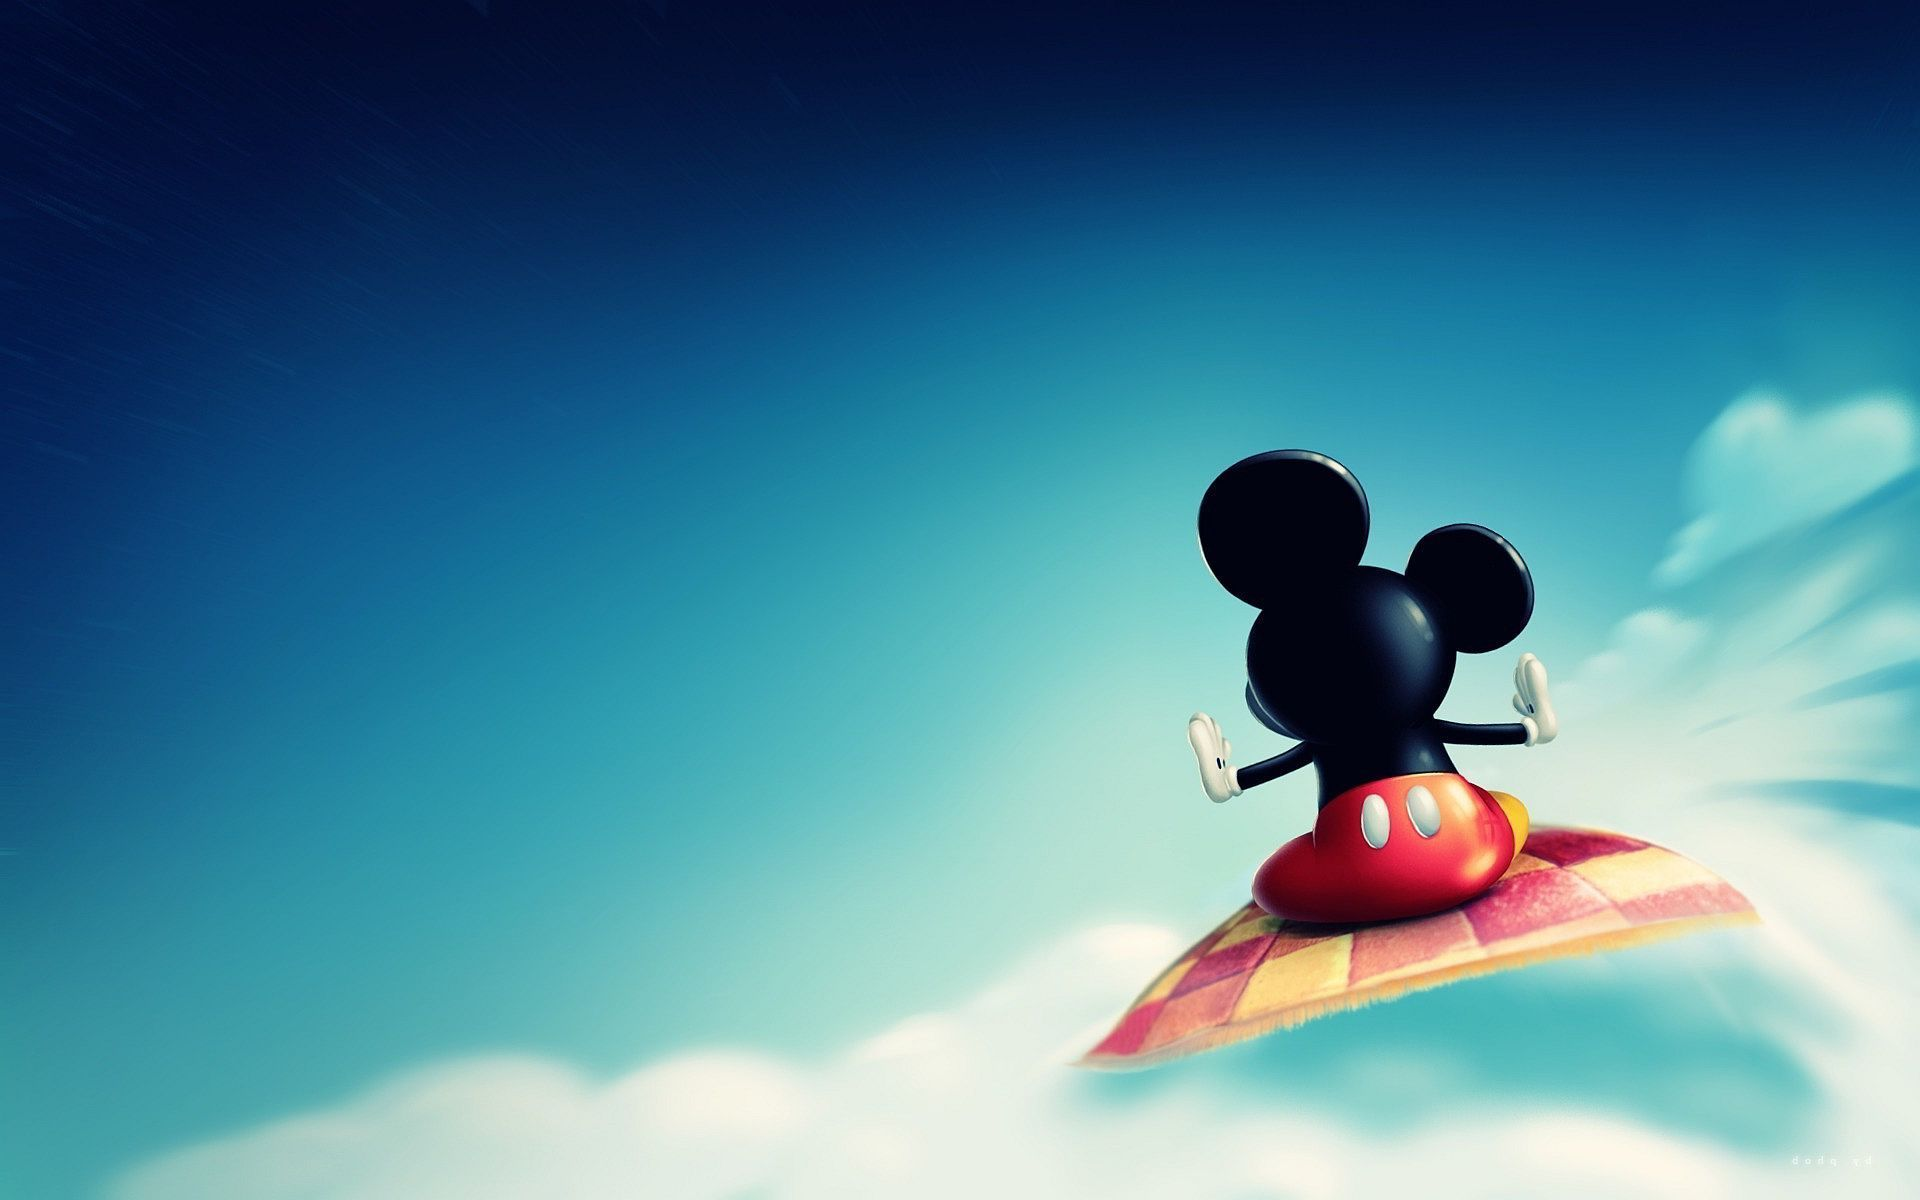 Mickey Mouse Cartoons Hd Wallpapers Download Hd Walls 1920x1200